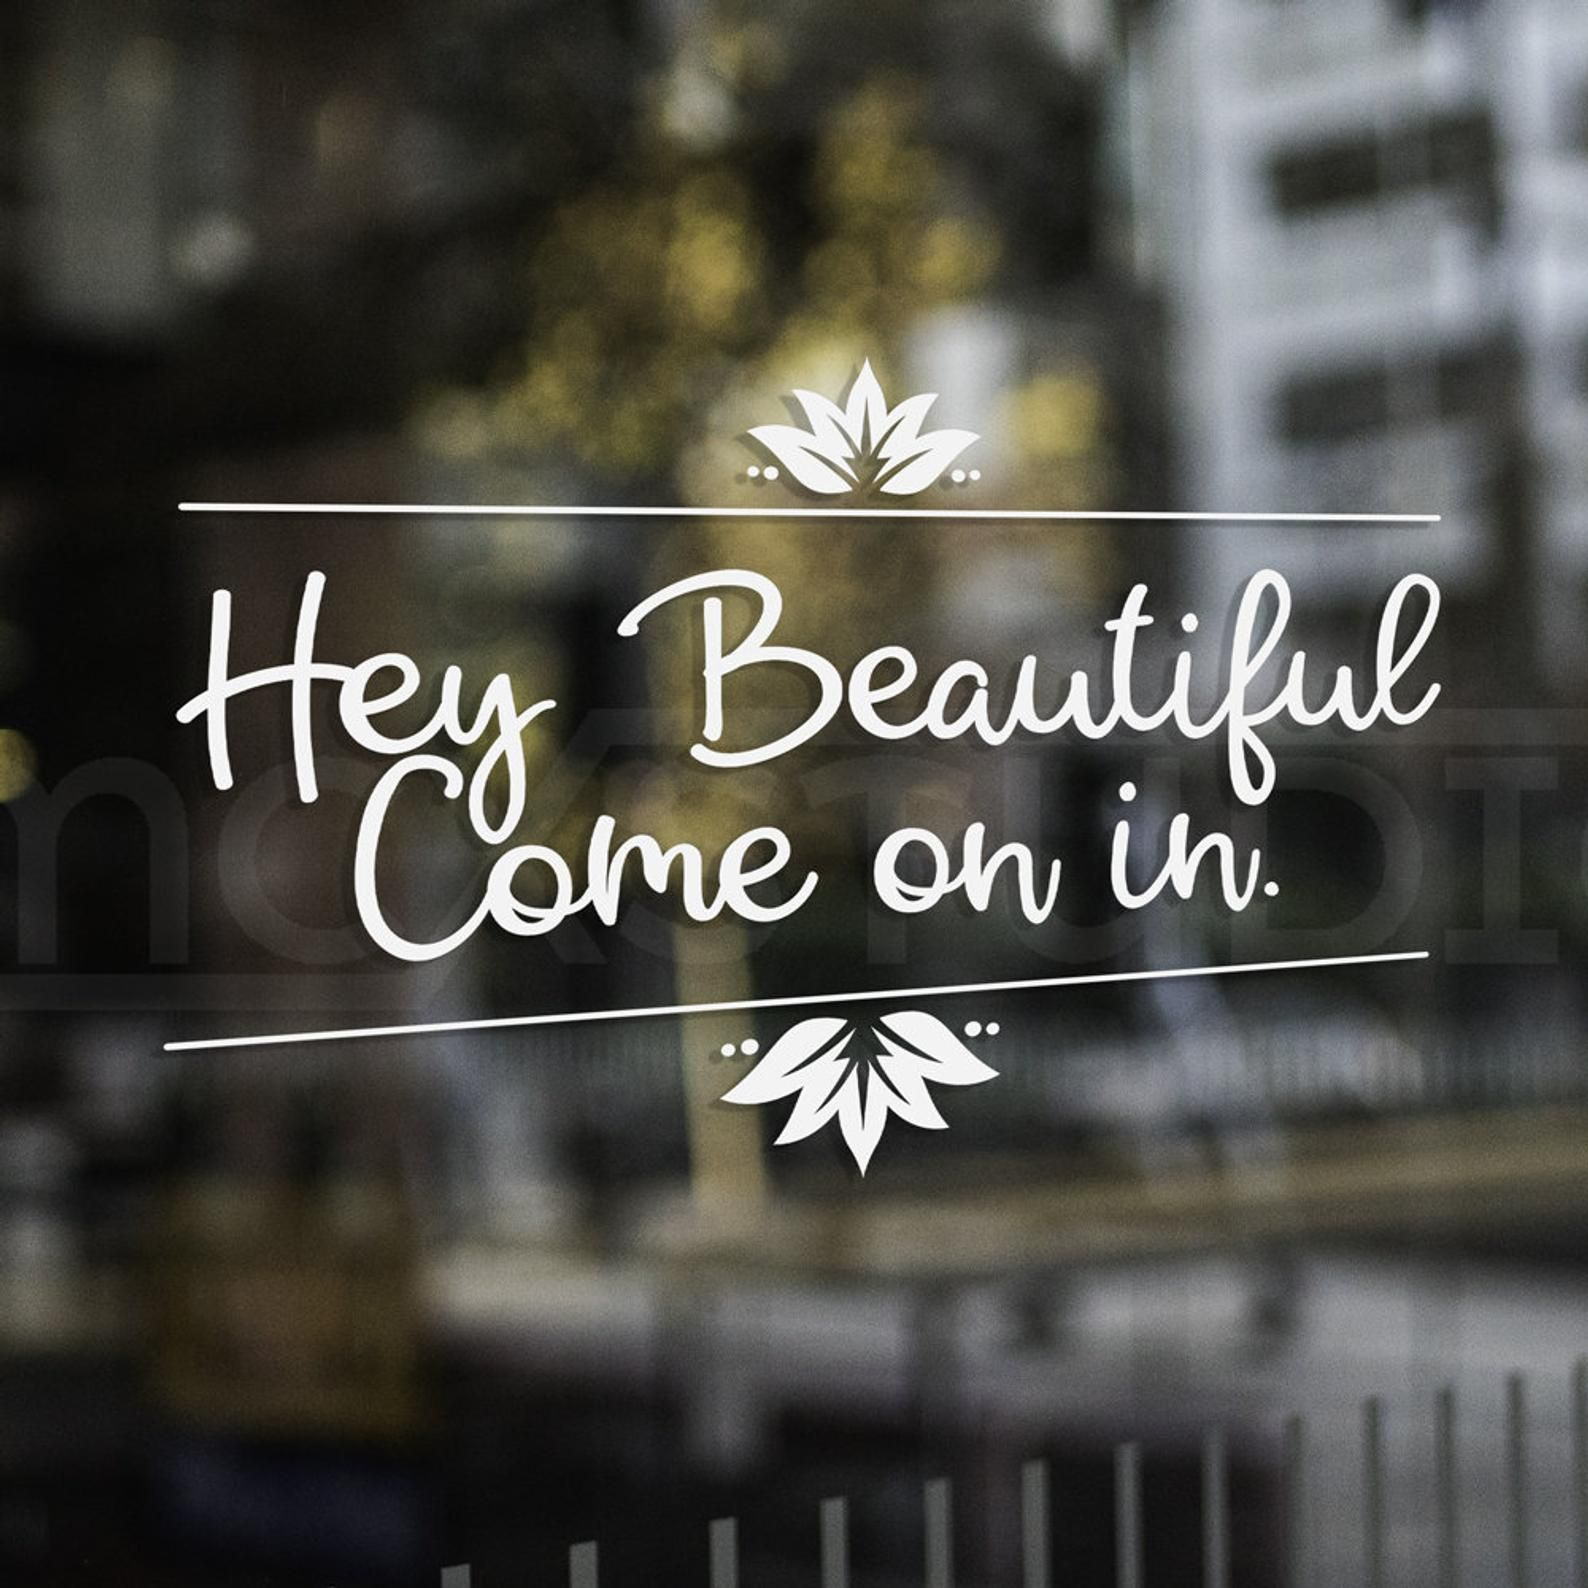 Photo of Walk-Ins Welcome Sign, Beauty Salon sign, Clothing Boutique